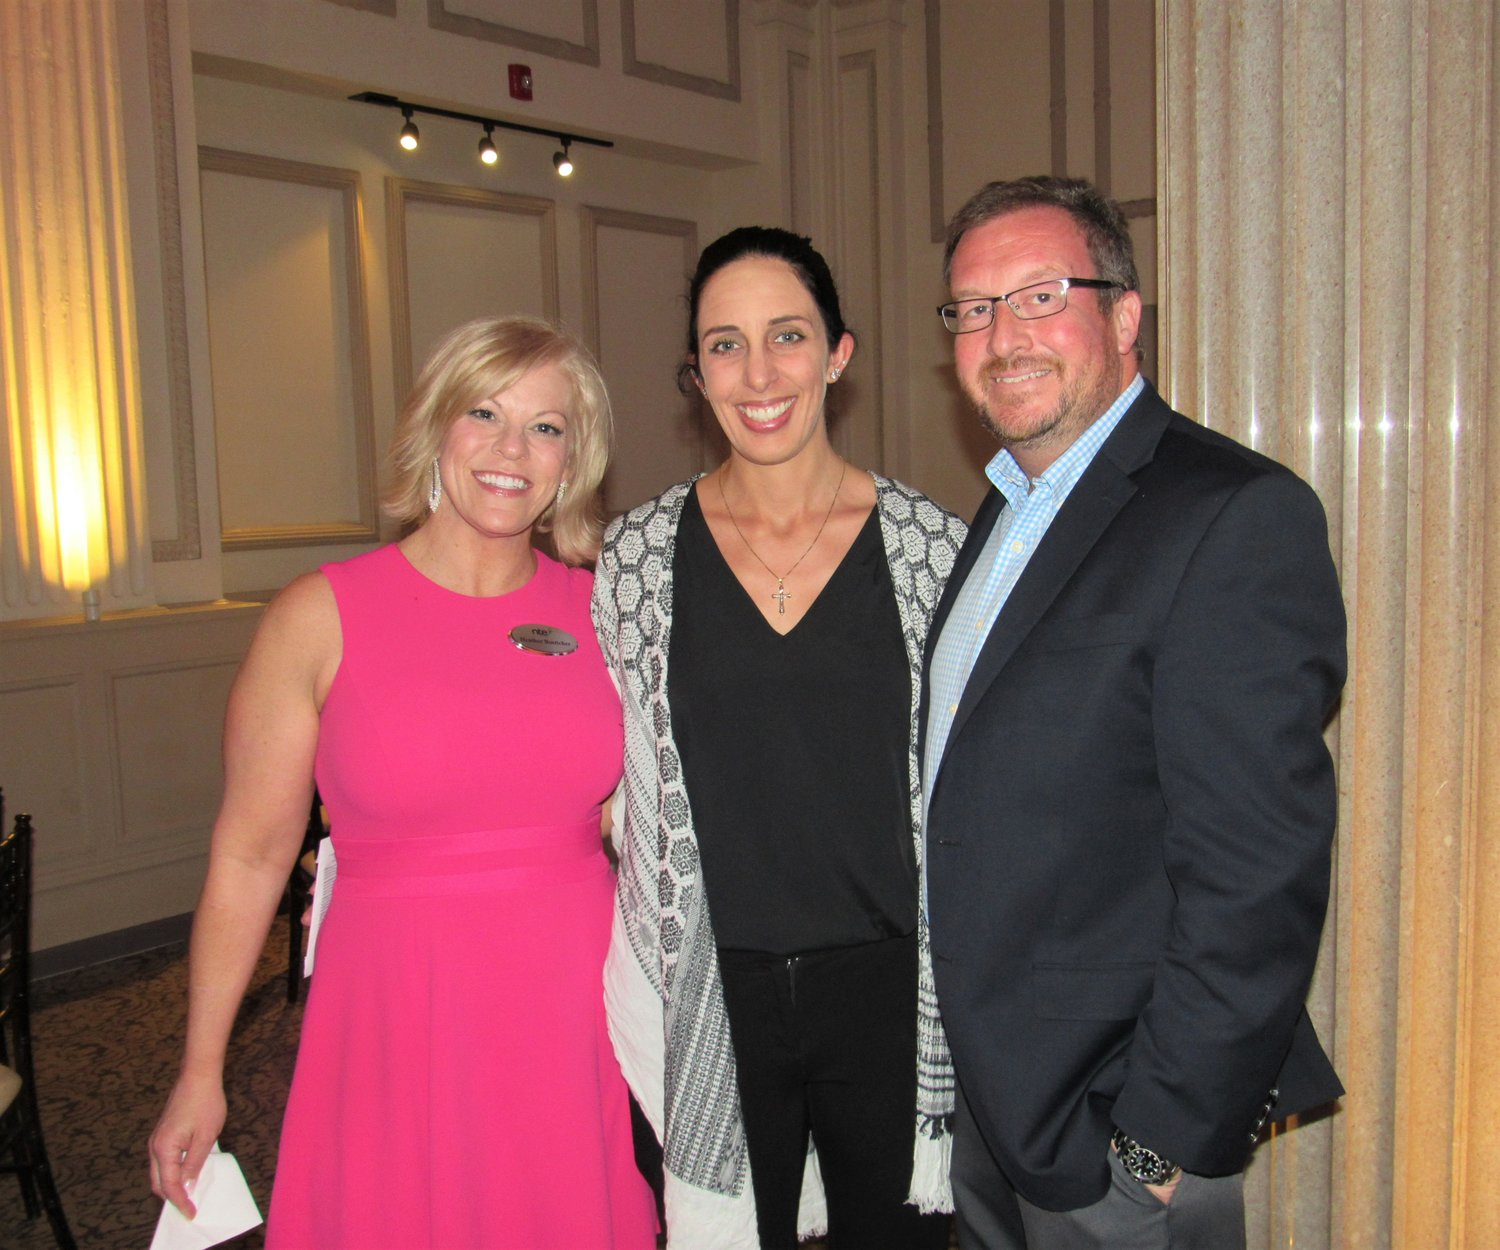 Heather Boettcher, Brandy Boulette and NTE Energy CEO Seth Shortlidge gather at the company's 10th anniversary celebration April 22 at The Treasury in St. Augustine.